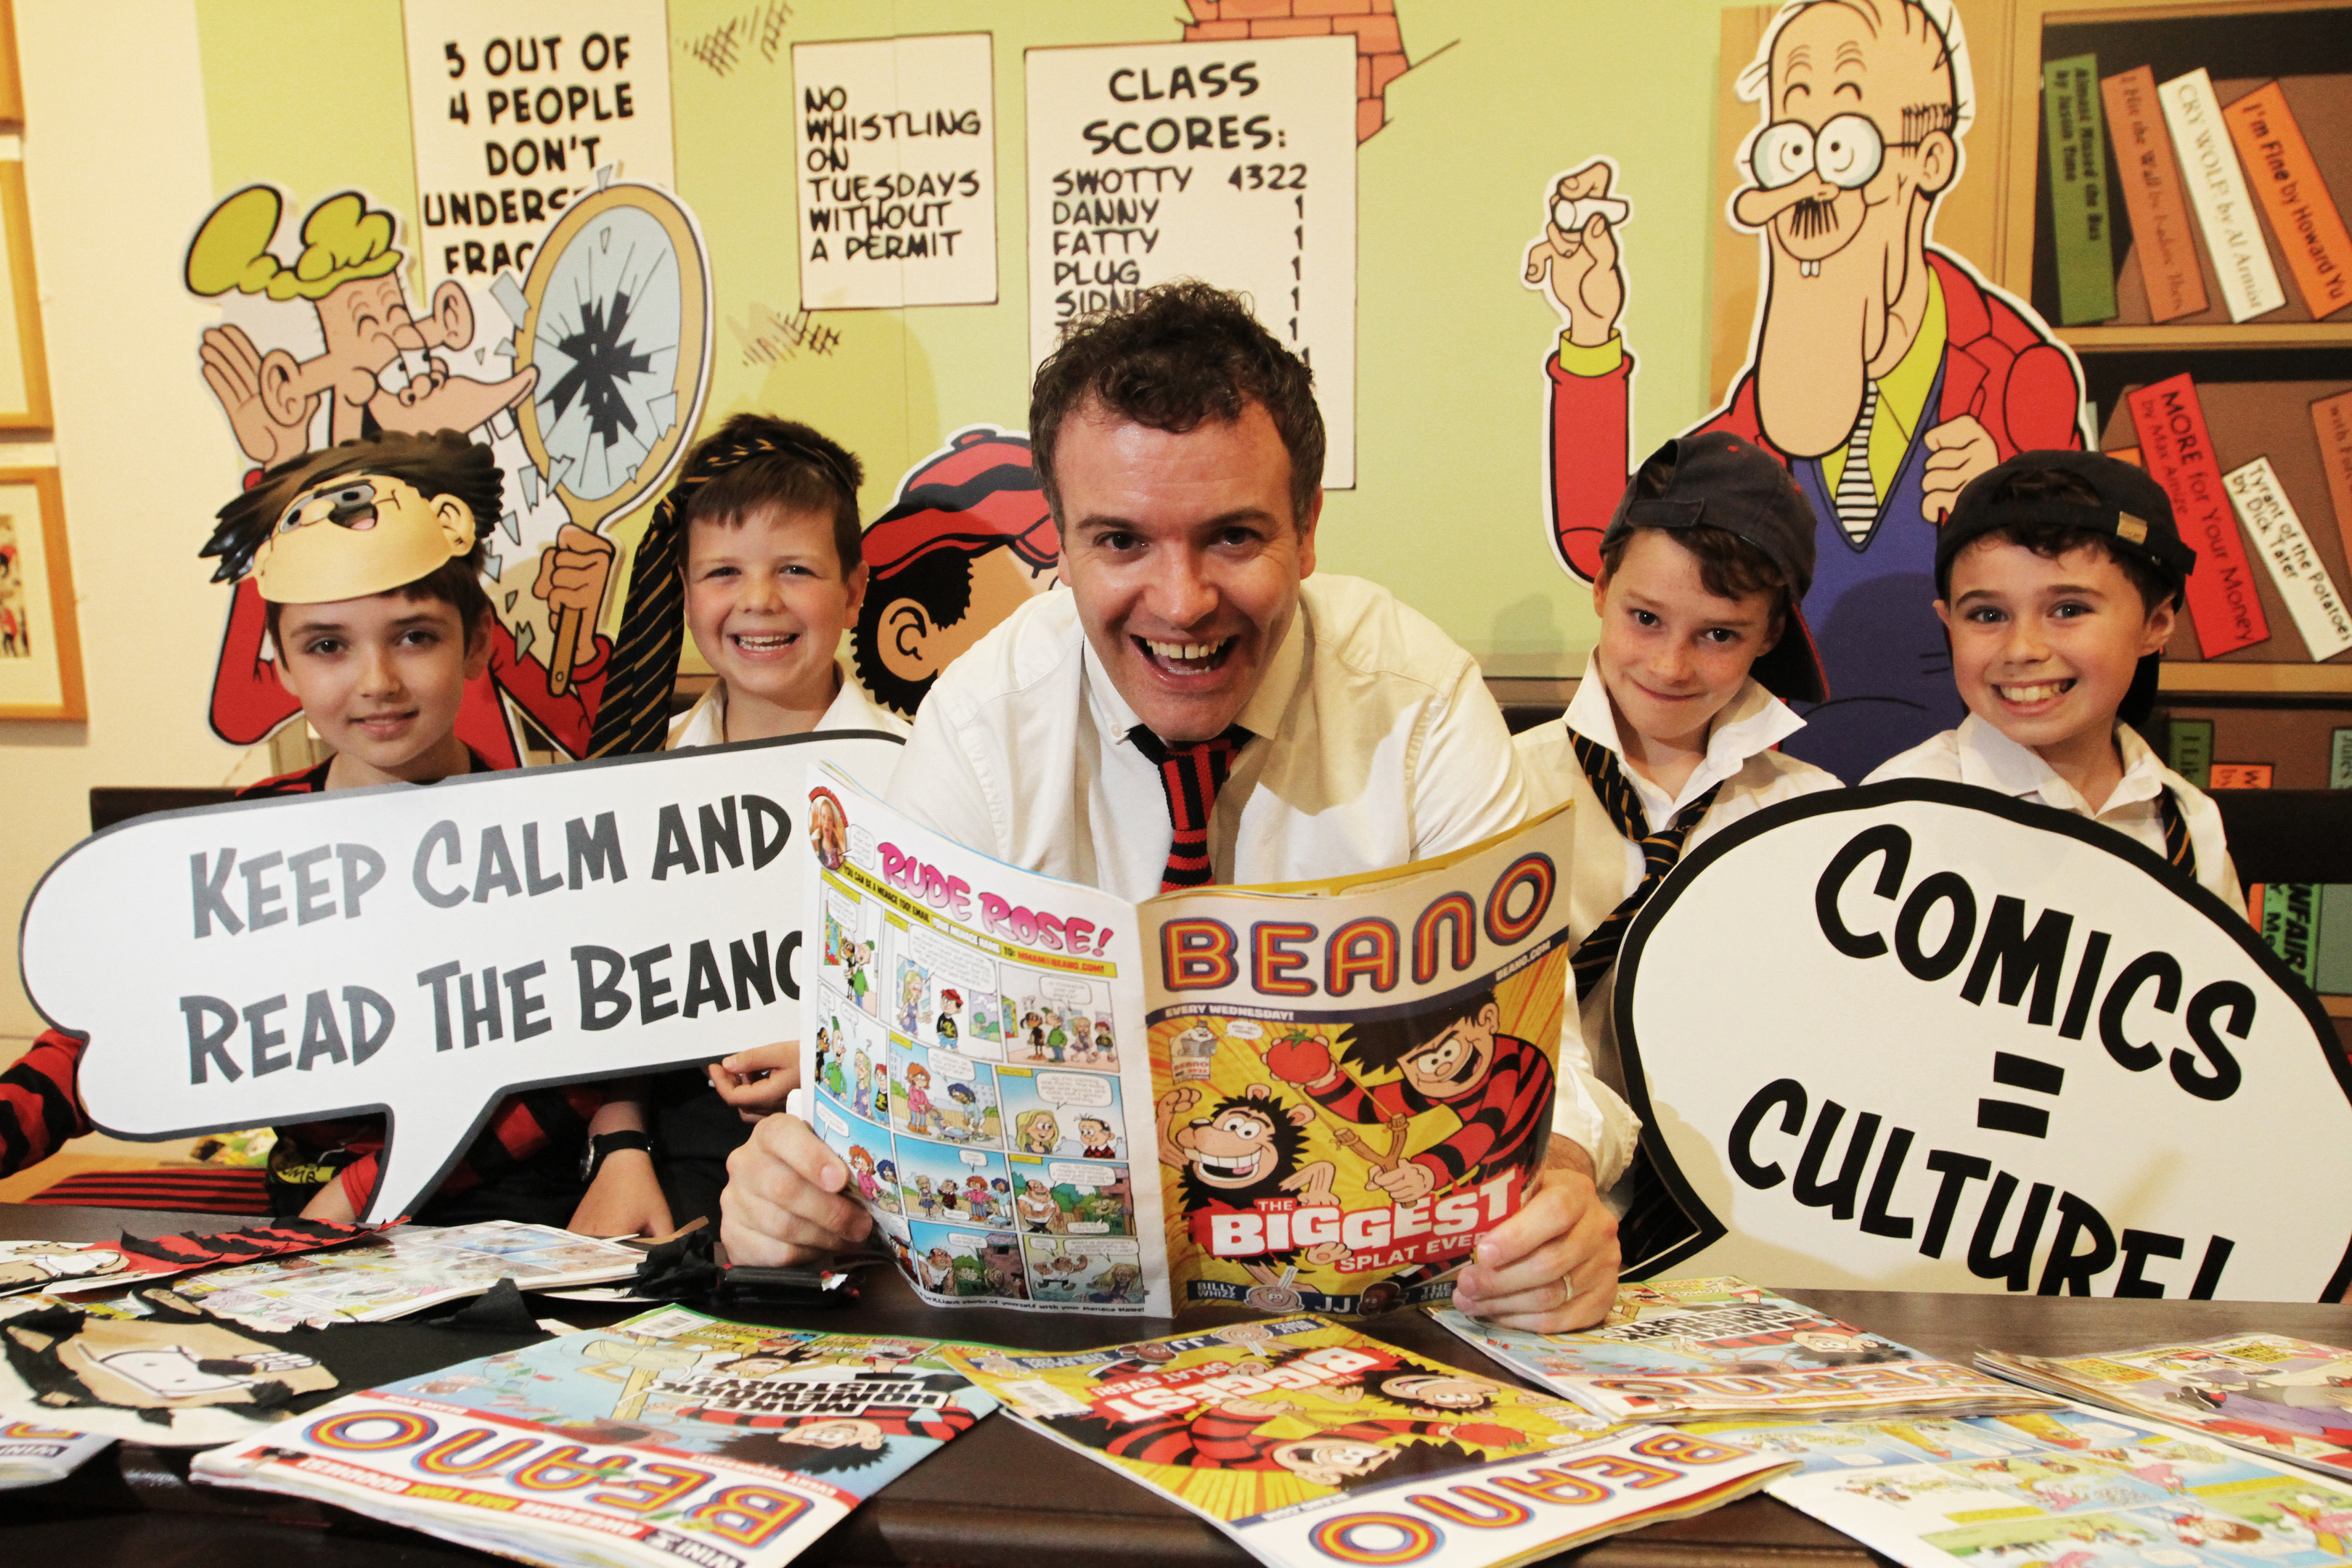 A new exhibition of all things Beano has opened with a class from Dundee High School attending.  Picture shows; l to r, Sam Brass, 9, Finlay Thomas, 9, Head of Beano Studios Scotland, Mike Stirling, Matthew Milne, 10 and Sam Blackhall, 10